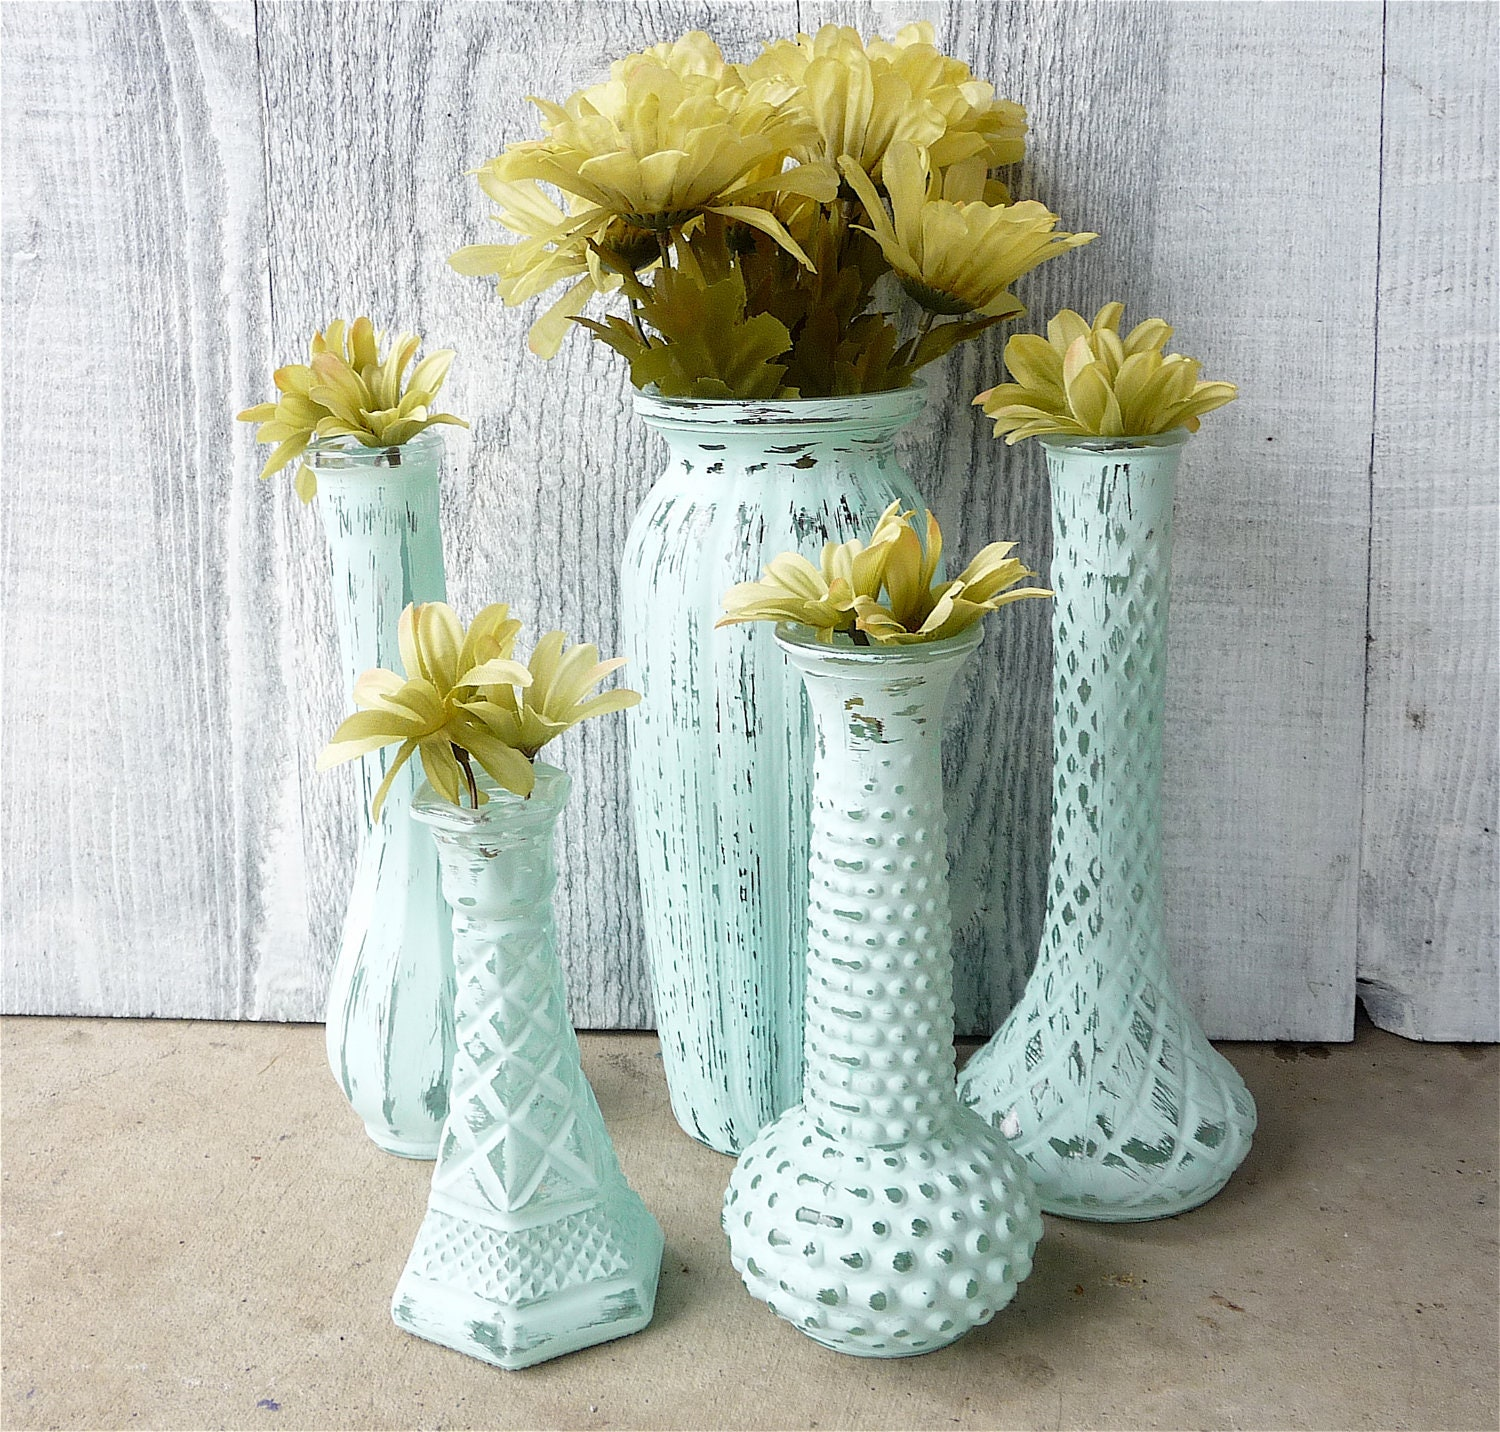 Shabby chic painted vases set of 5 in teal aqua by - Telas shabby chic ...